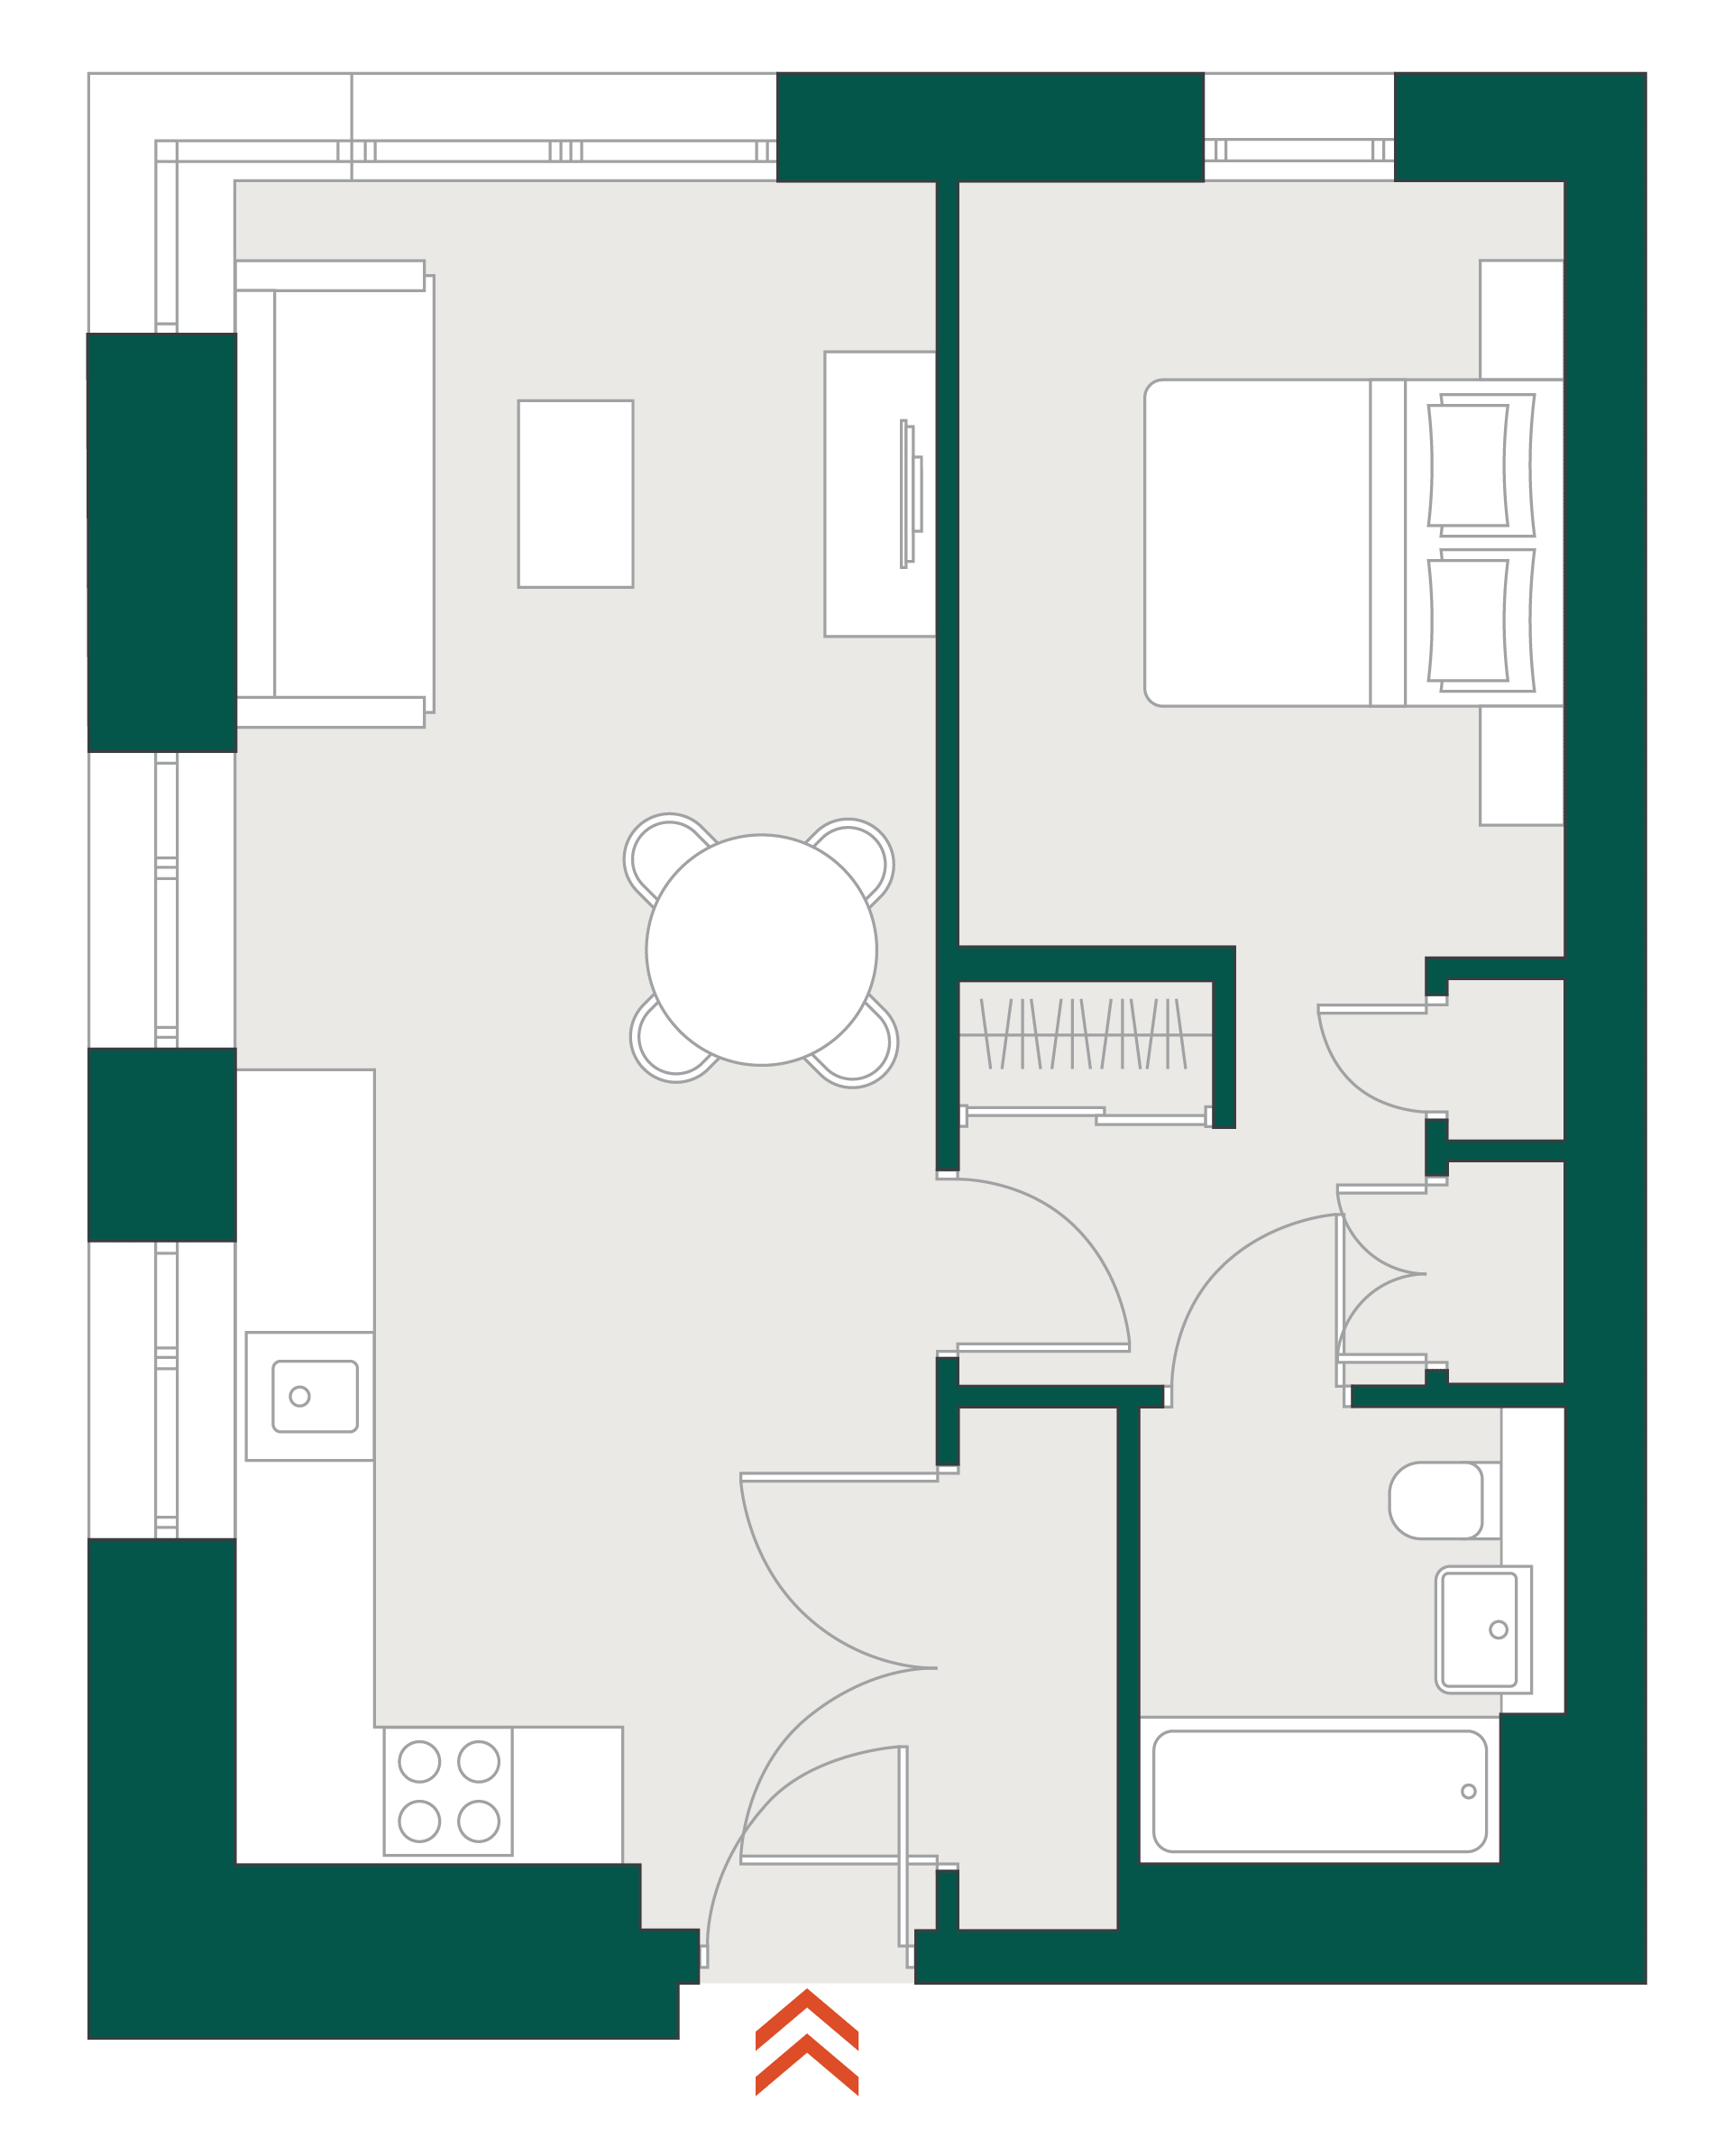 Blackhorse Mills 1 Bedroom WYG & floor plan typical floor plan